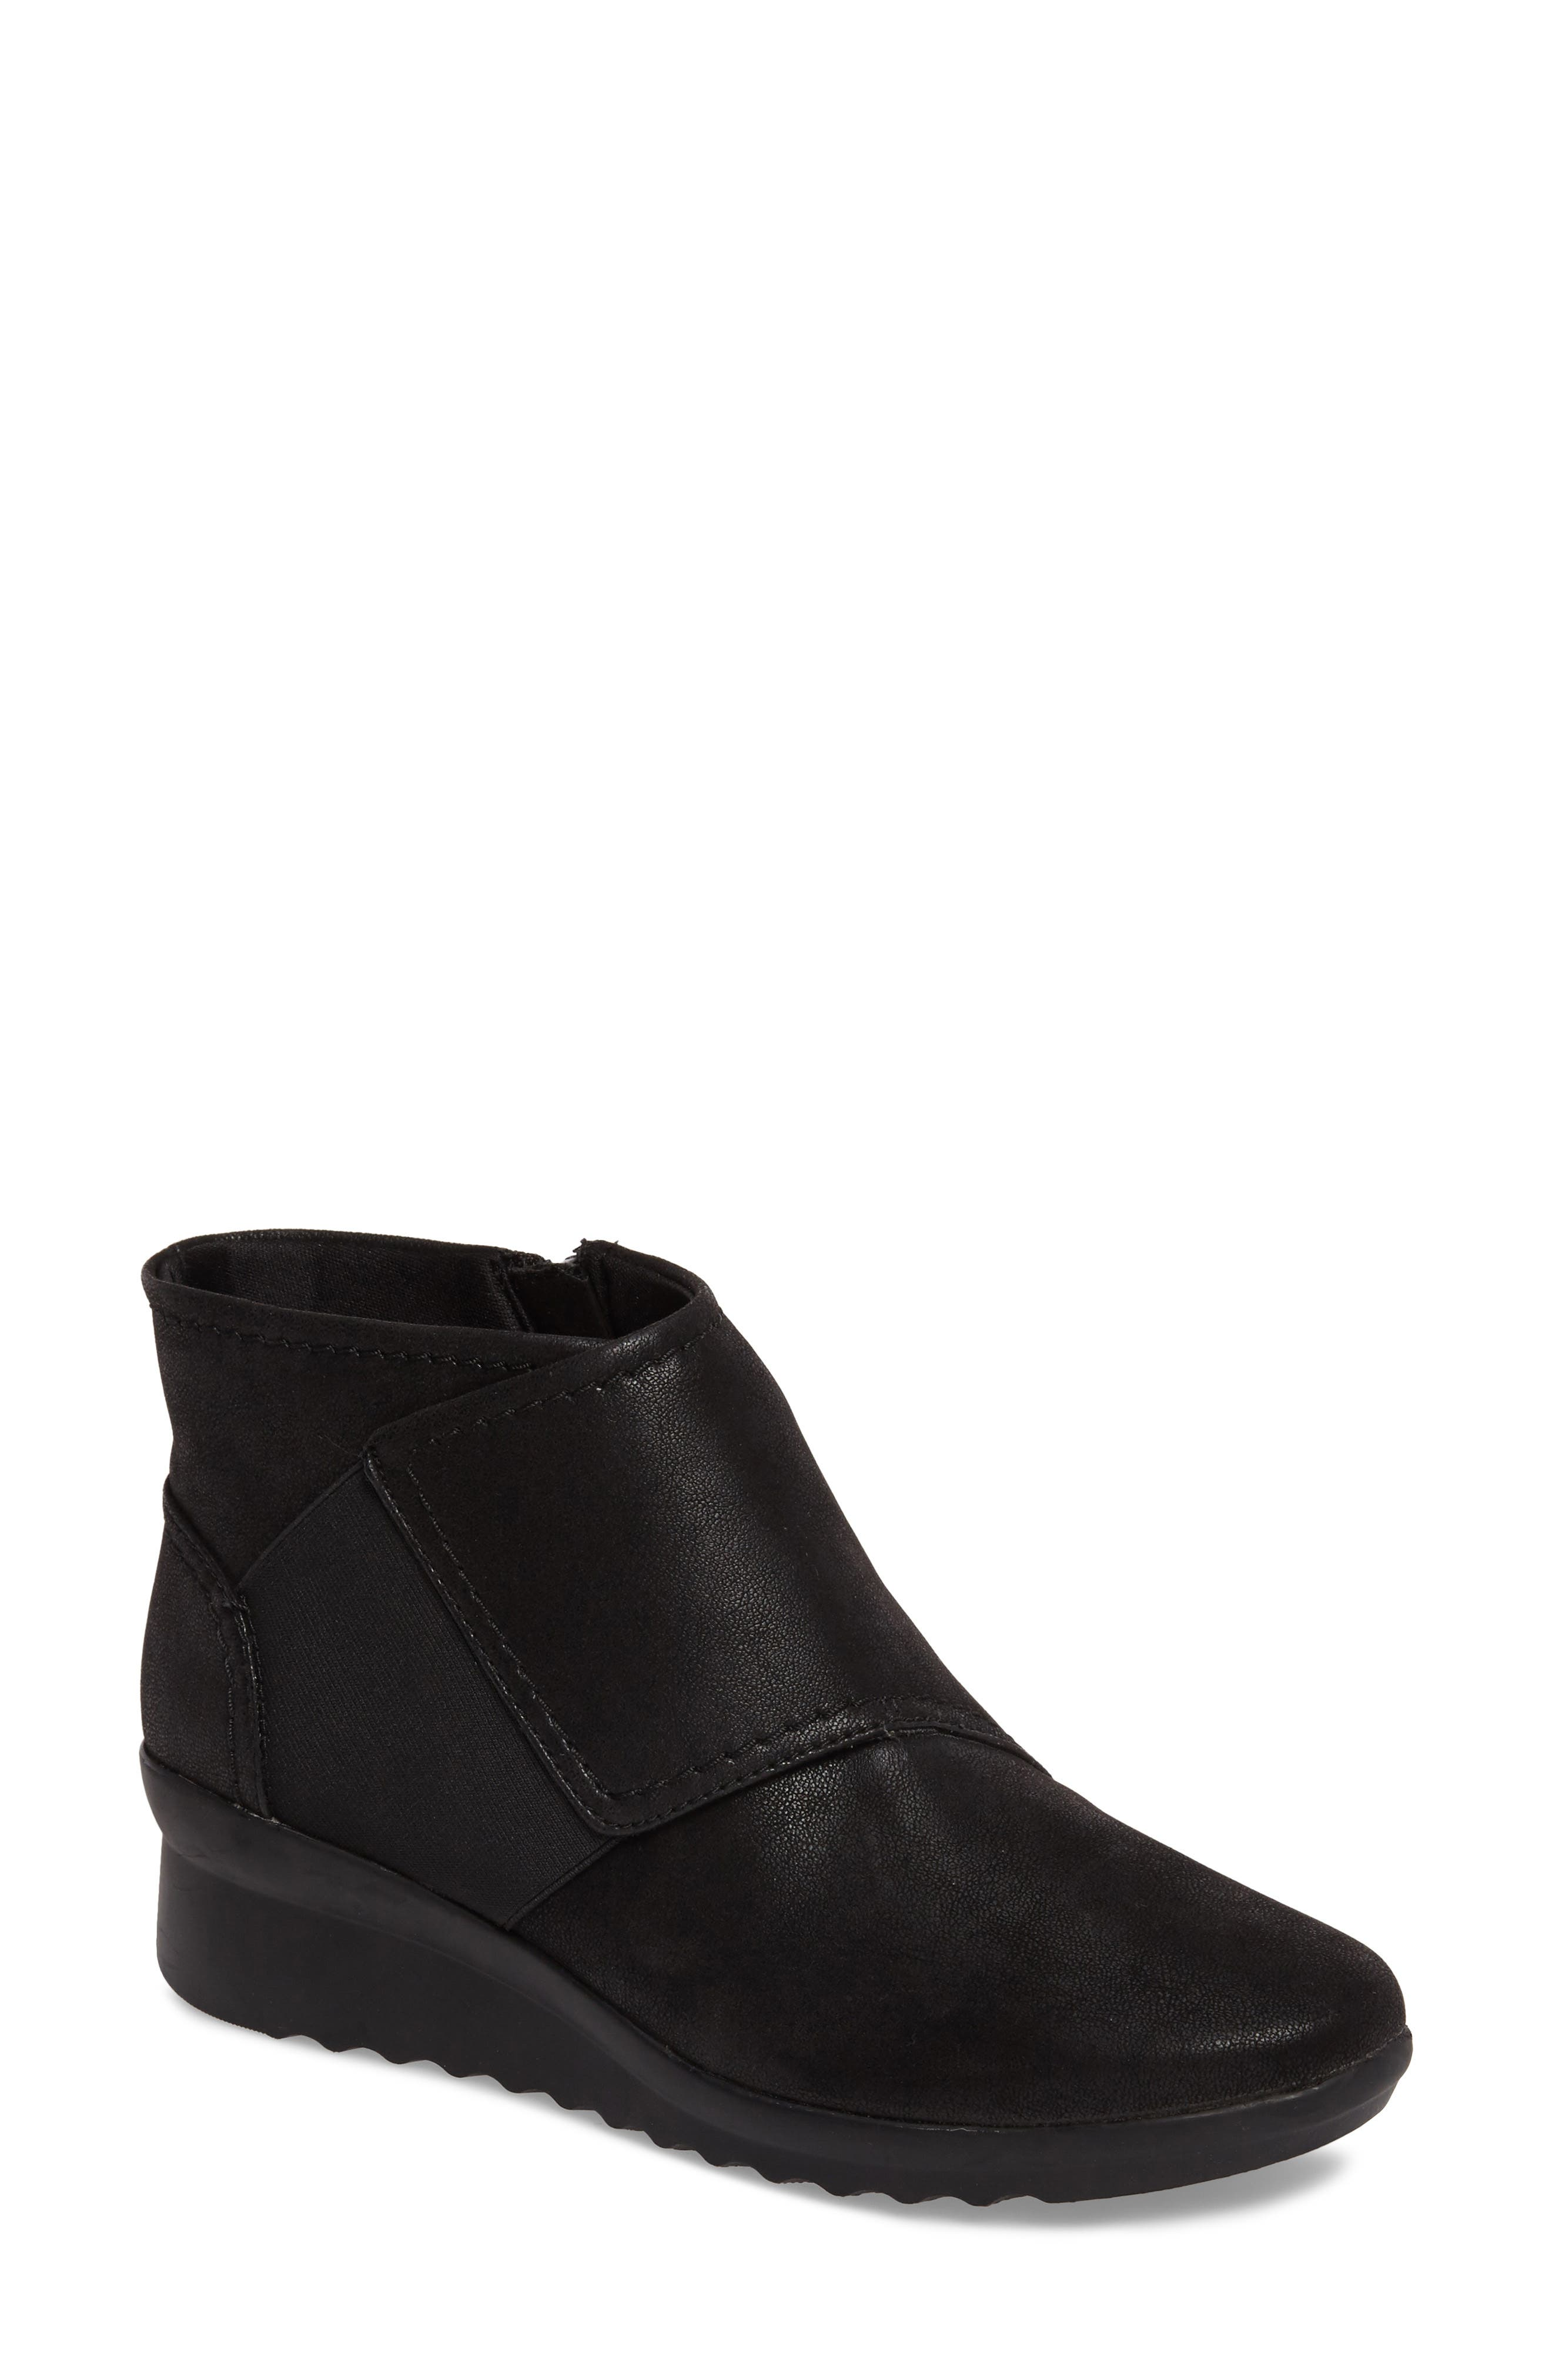 Caddell Rush Bootie,                         Main,                         color,